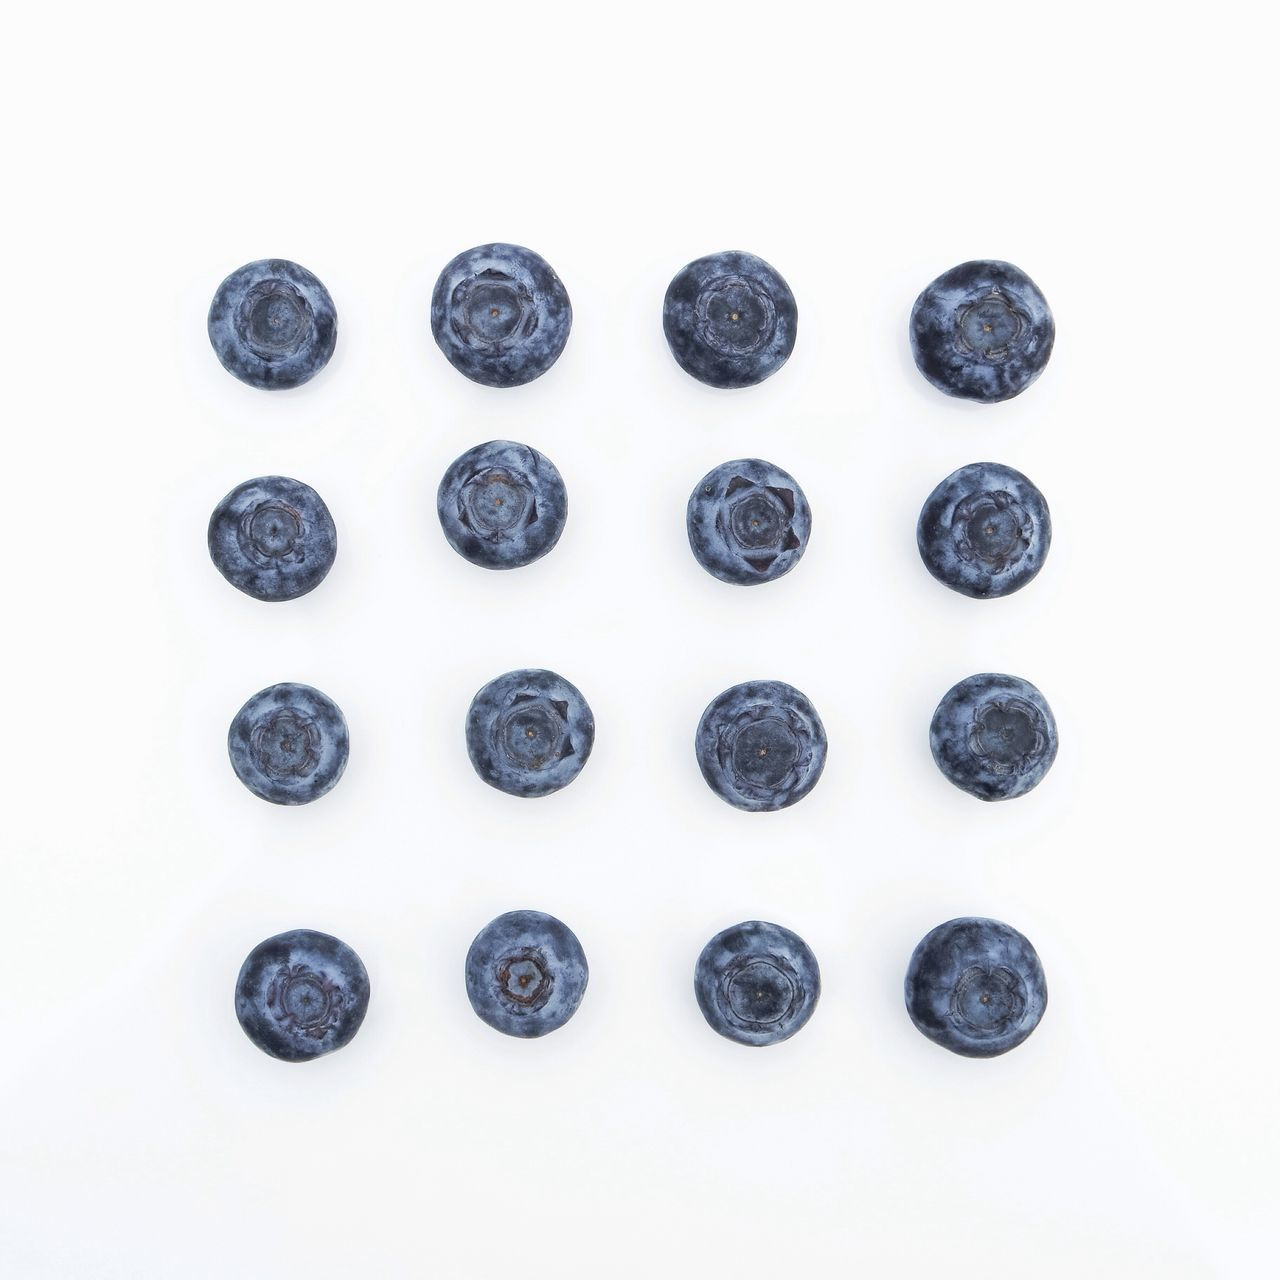 Close-up of blueberries on white background